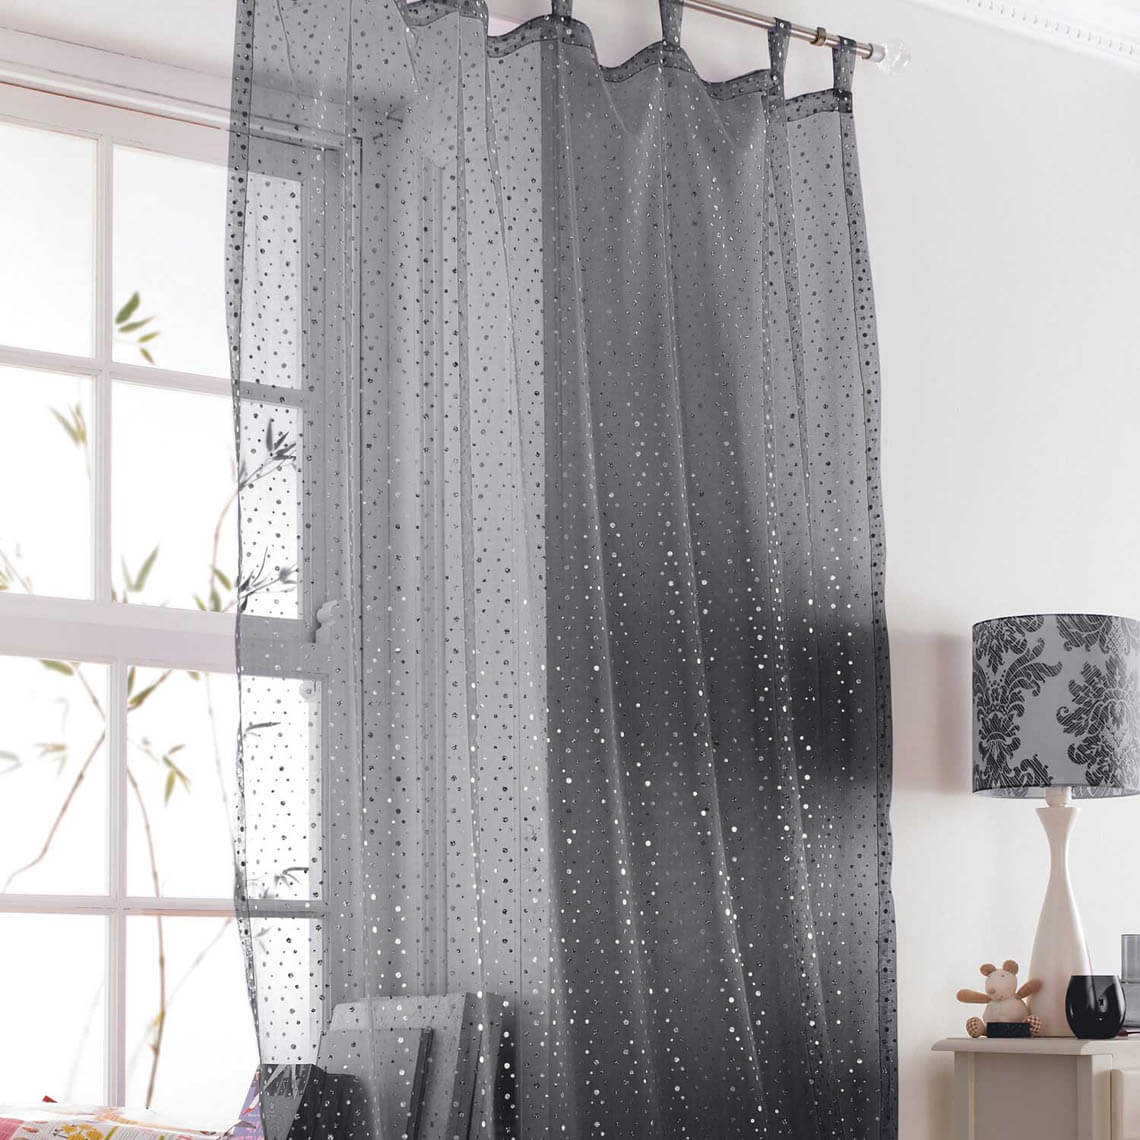 Black Voile Curtains Popsical Black Voile Curtain 043137